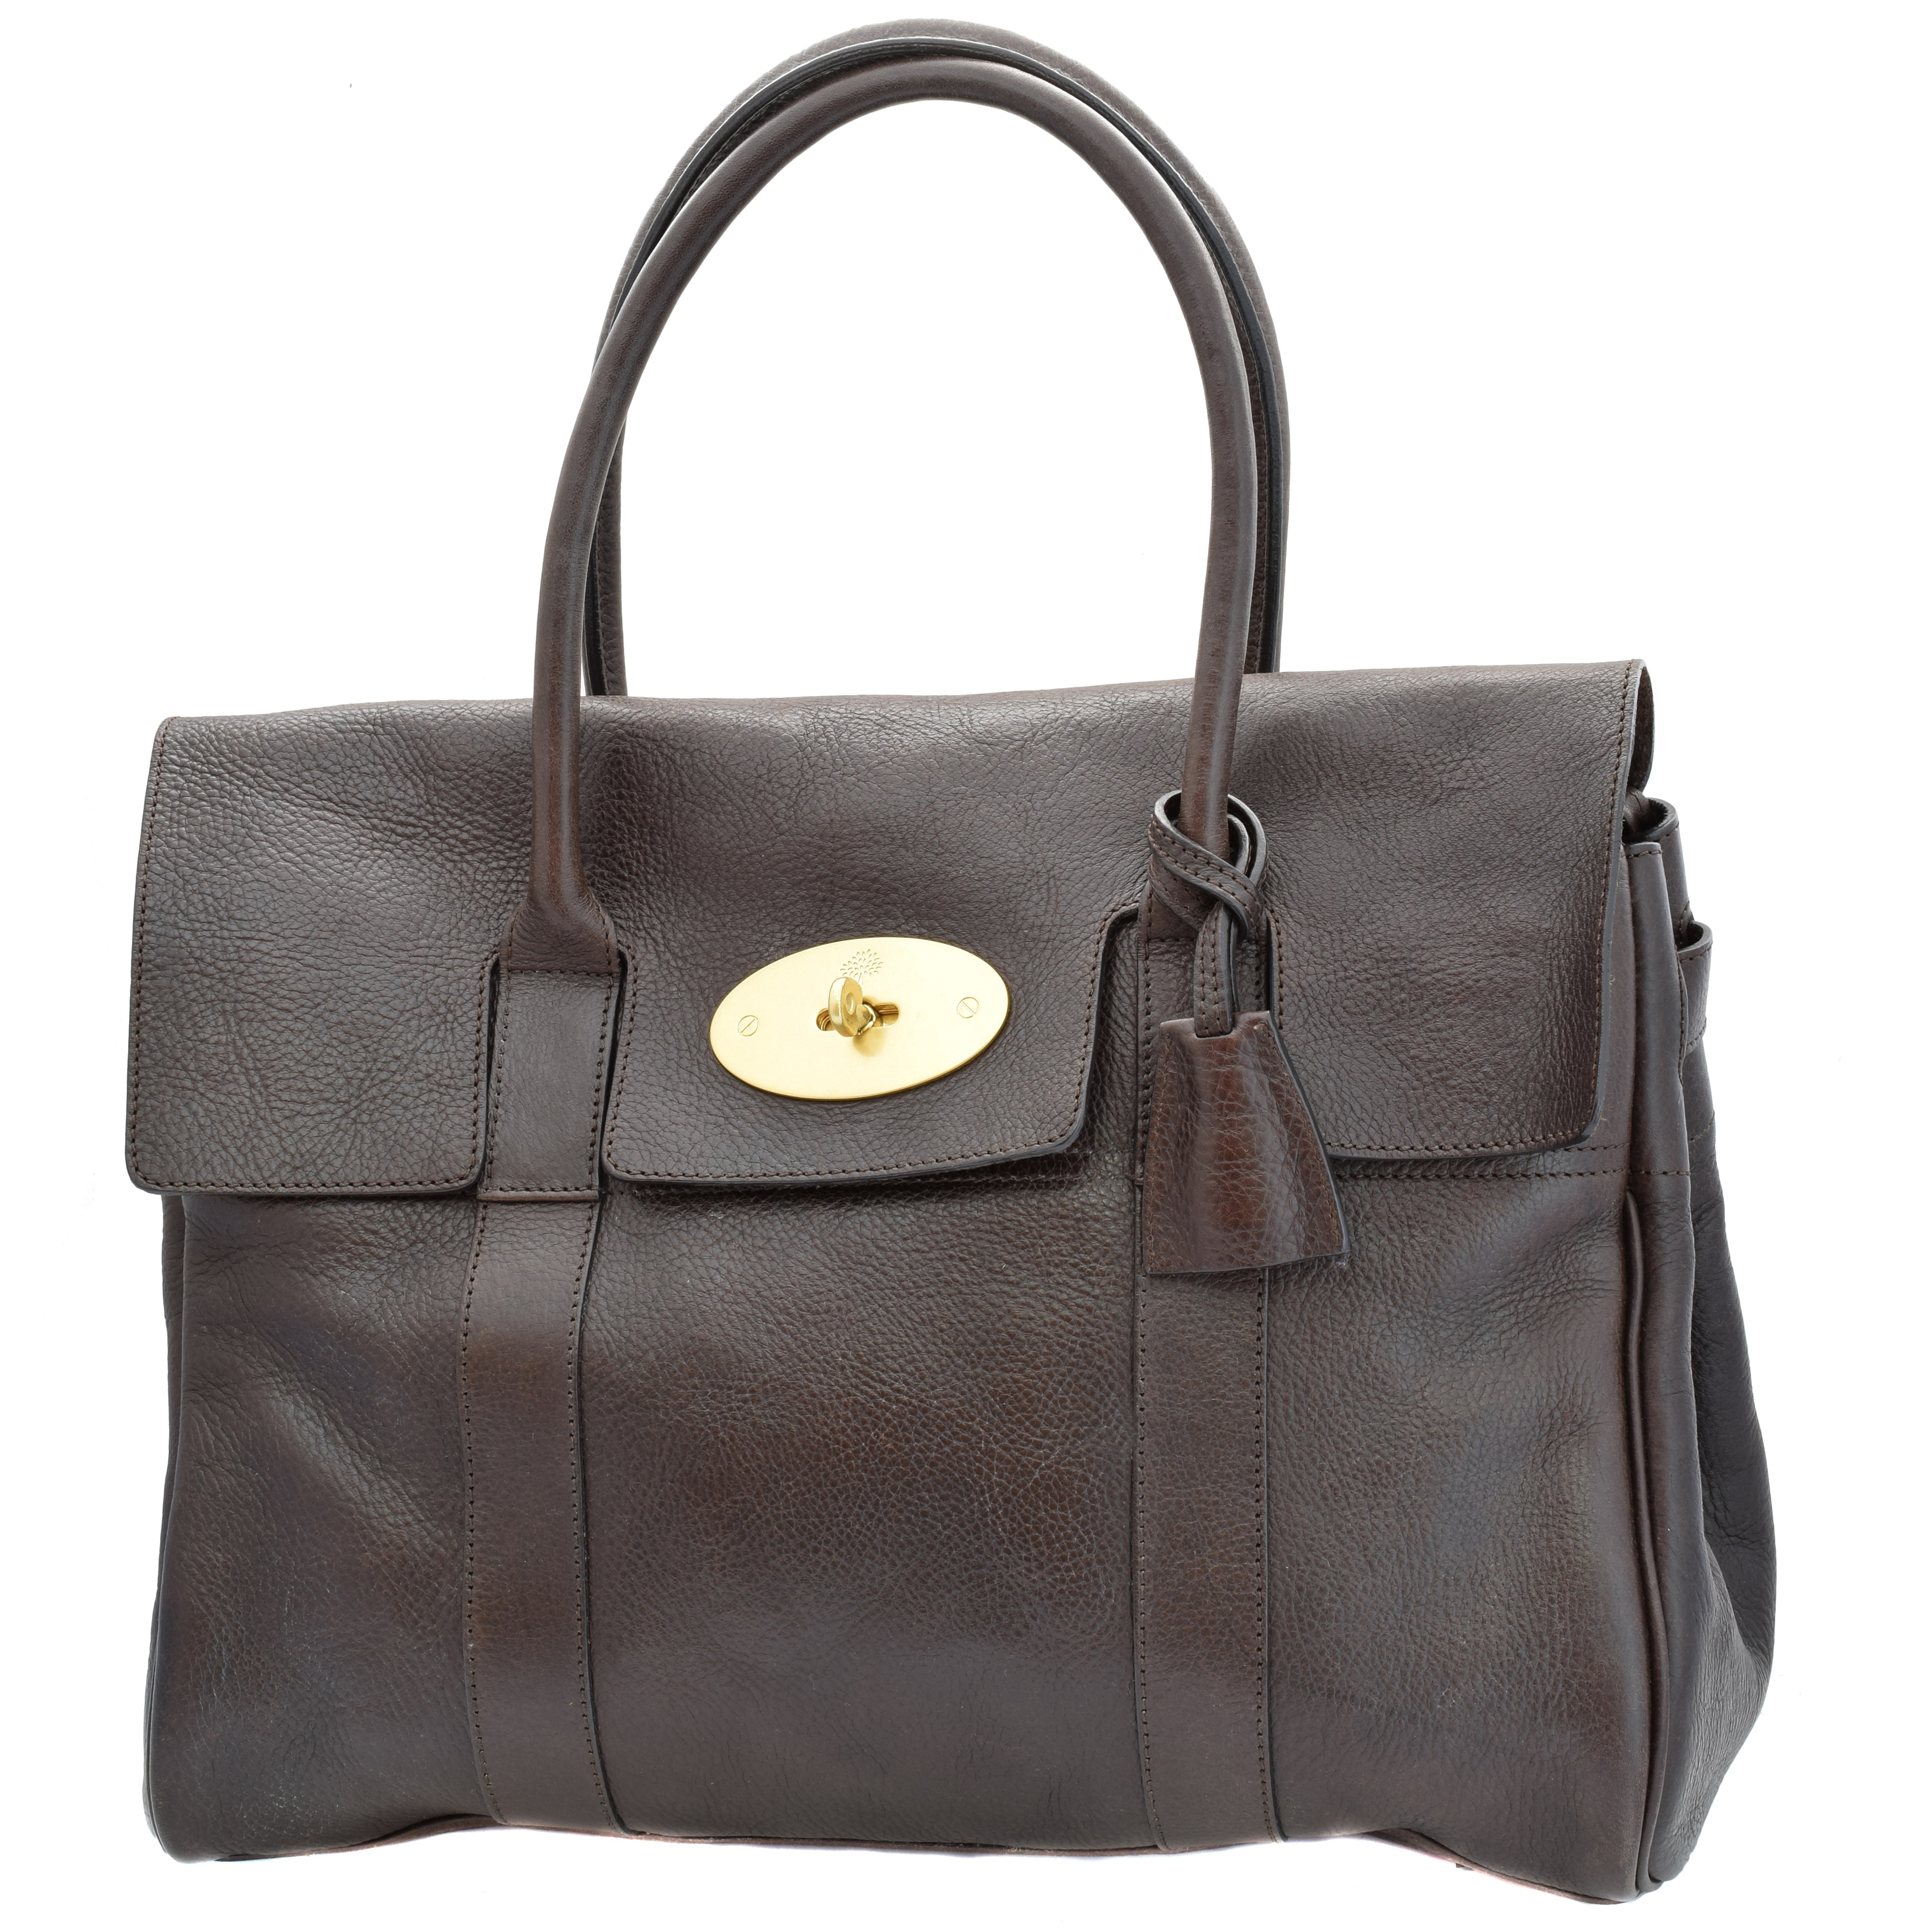 A Mulberry Bayswater handbag, the chocolate brown darwin leather exterior with traditional brass tone postman's lock, rollled handles and top flap opening to internal zip and slip pocket, with maker's dustbag, original tag and booklet.